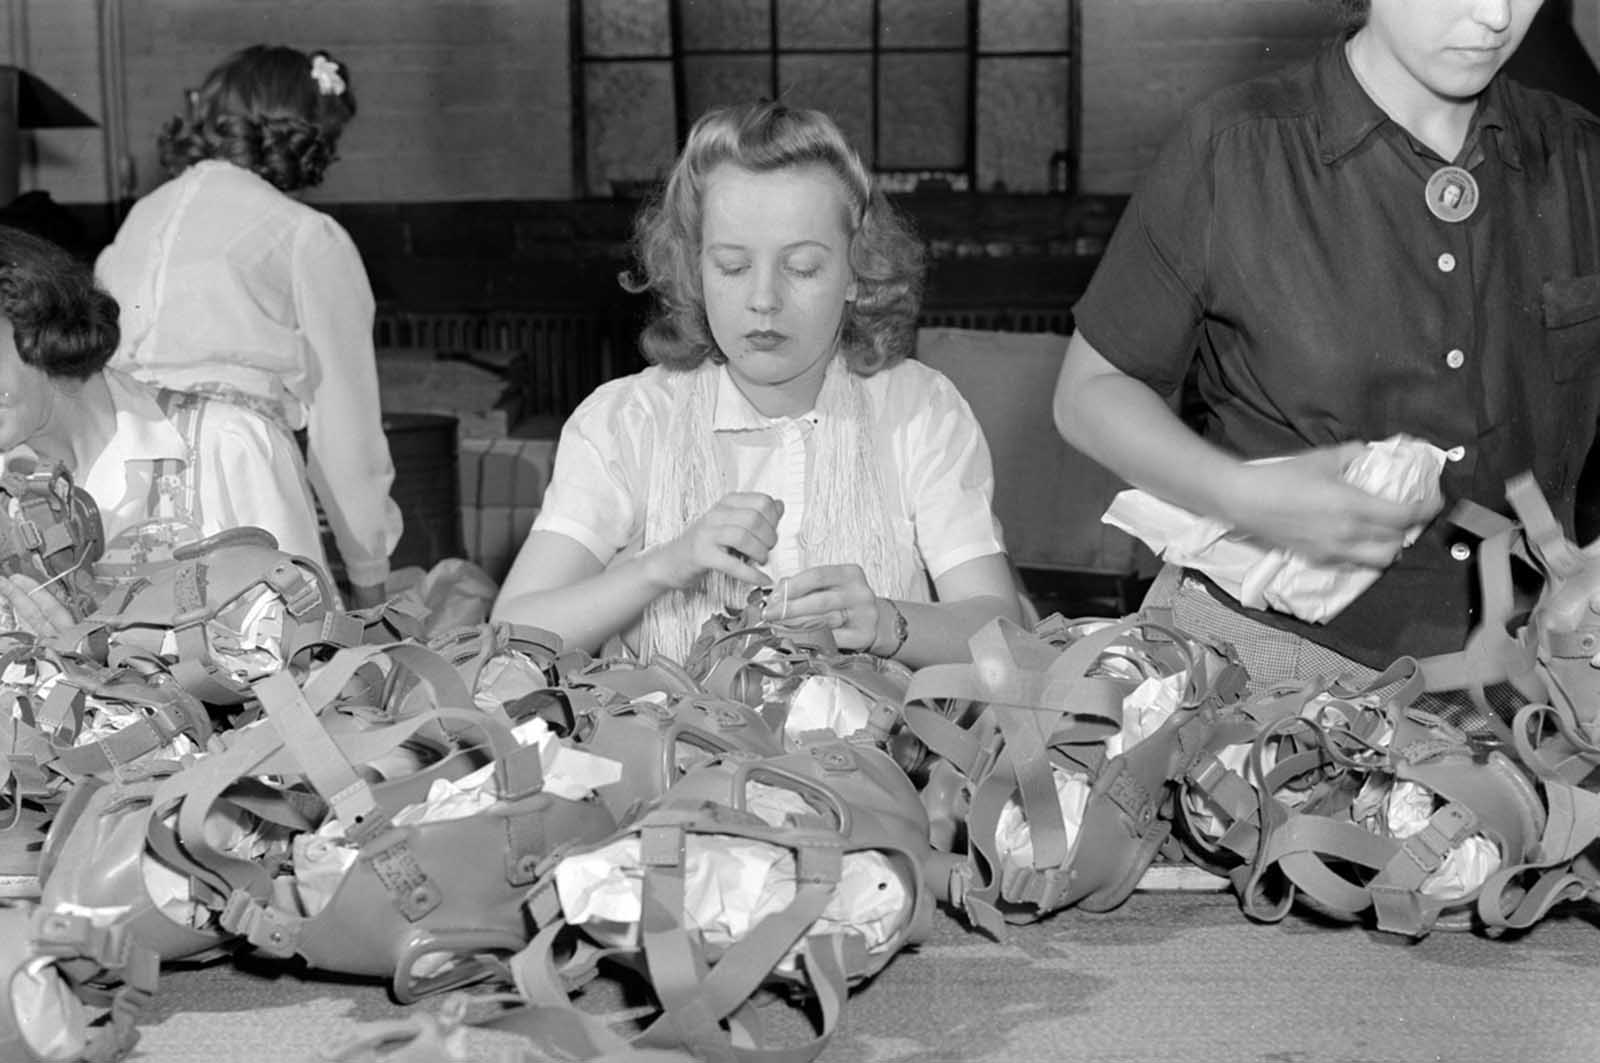 Gas mask production. Lacing head harnesses of gas masks after they have passed through all the stages of assembly and made ready for packaging, is the job of this young woman who works in the Eureka Vacuum factory which has been converted to war production.